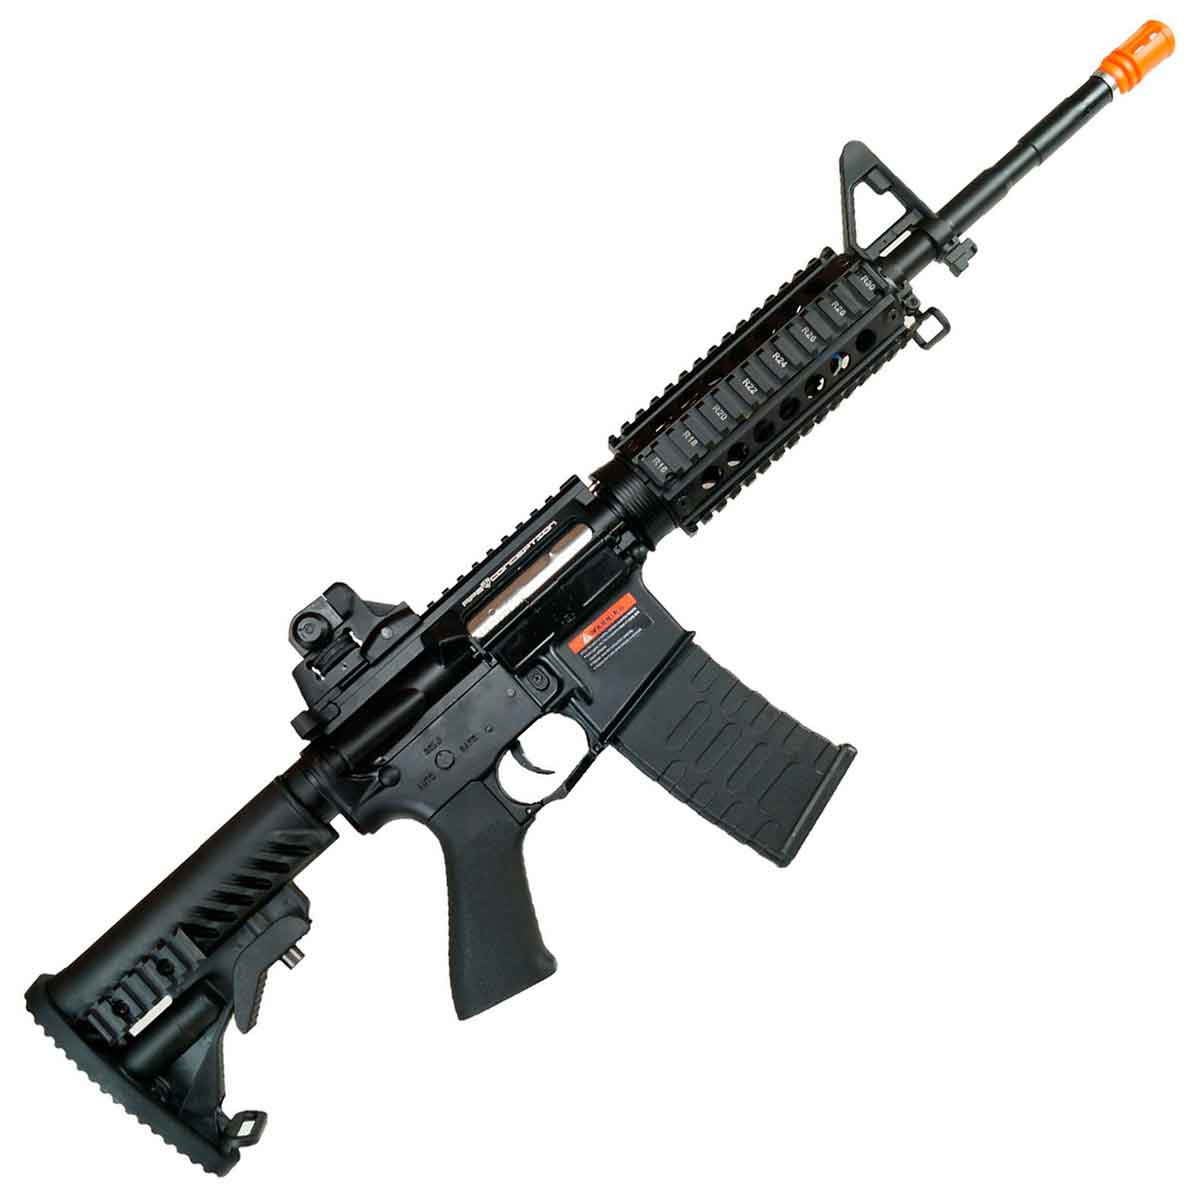 Rifle Airsoft APS M4 ASR104 Full Metal BlowBack Elétr Bivolt